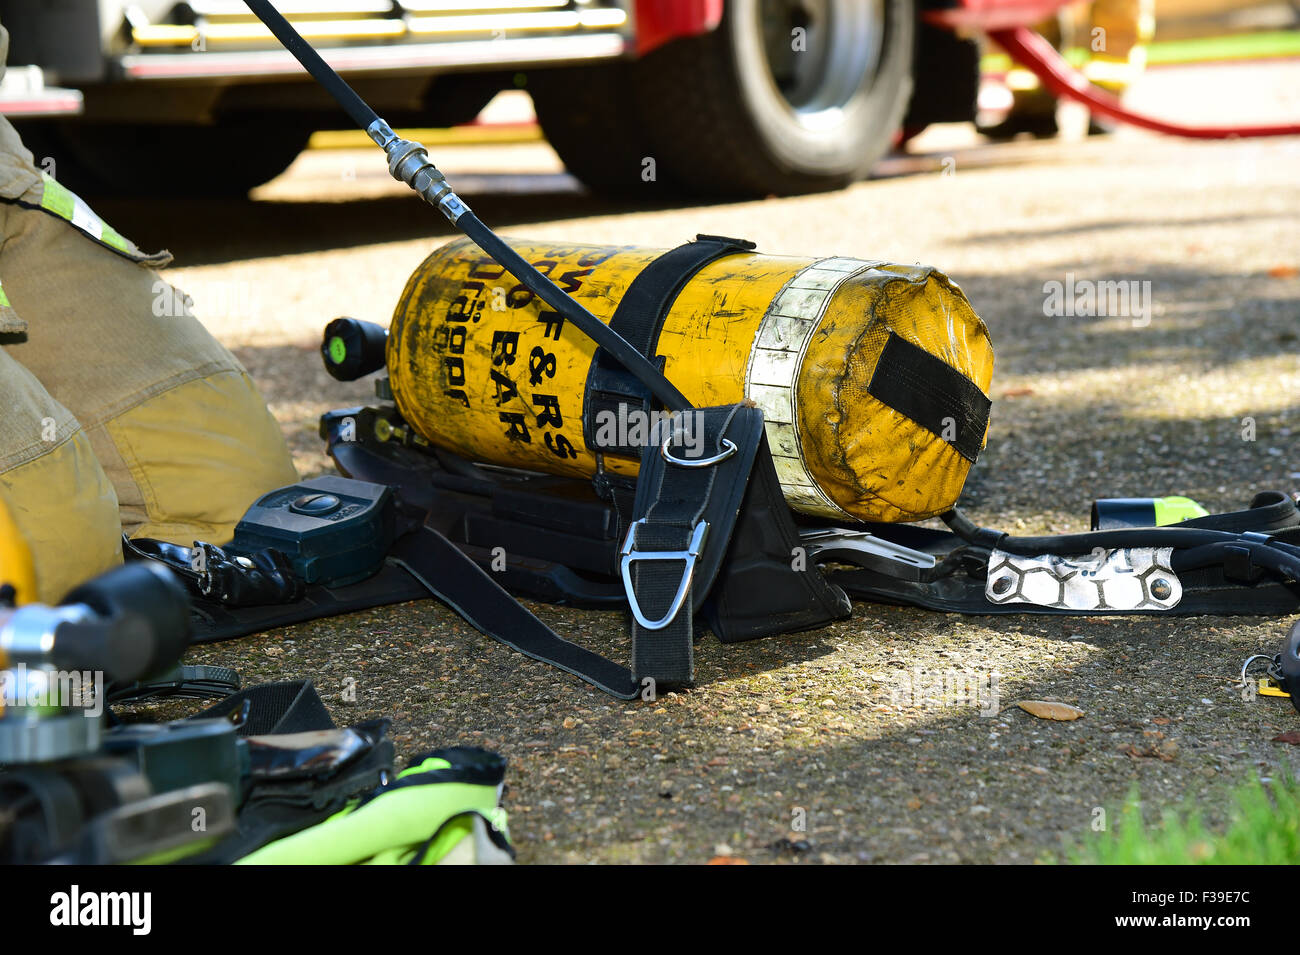 Firefighter prepares his breathing apparatus, at the scene of a fire. - Stock Image